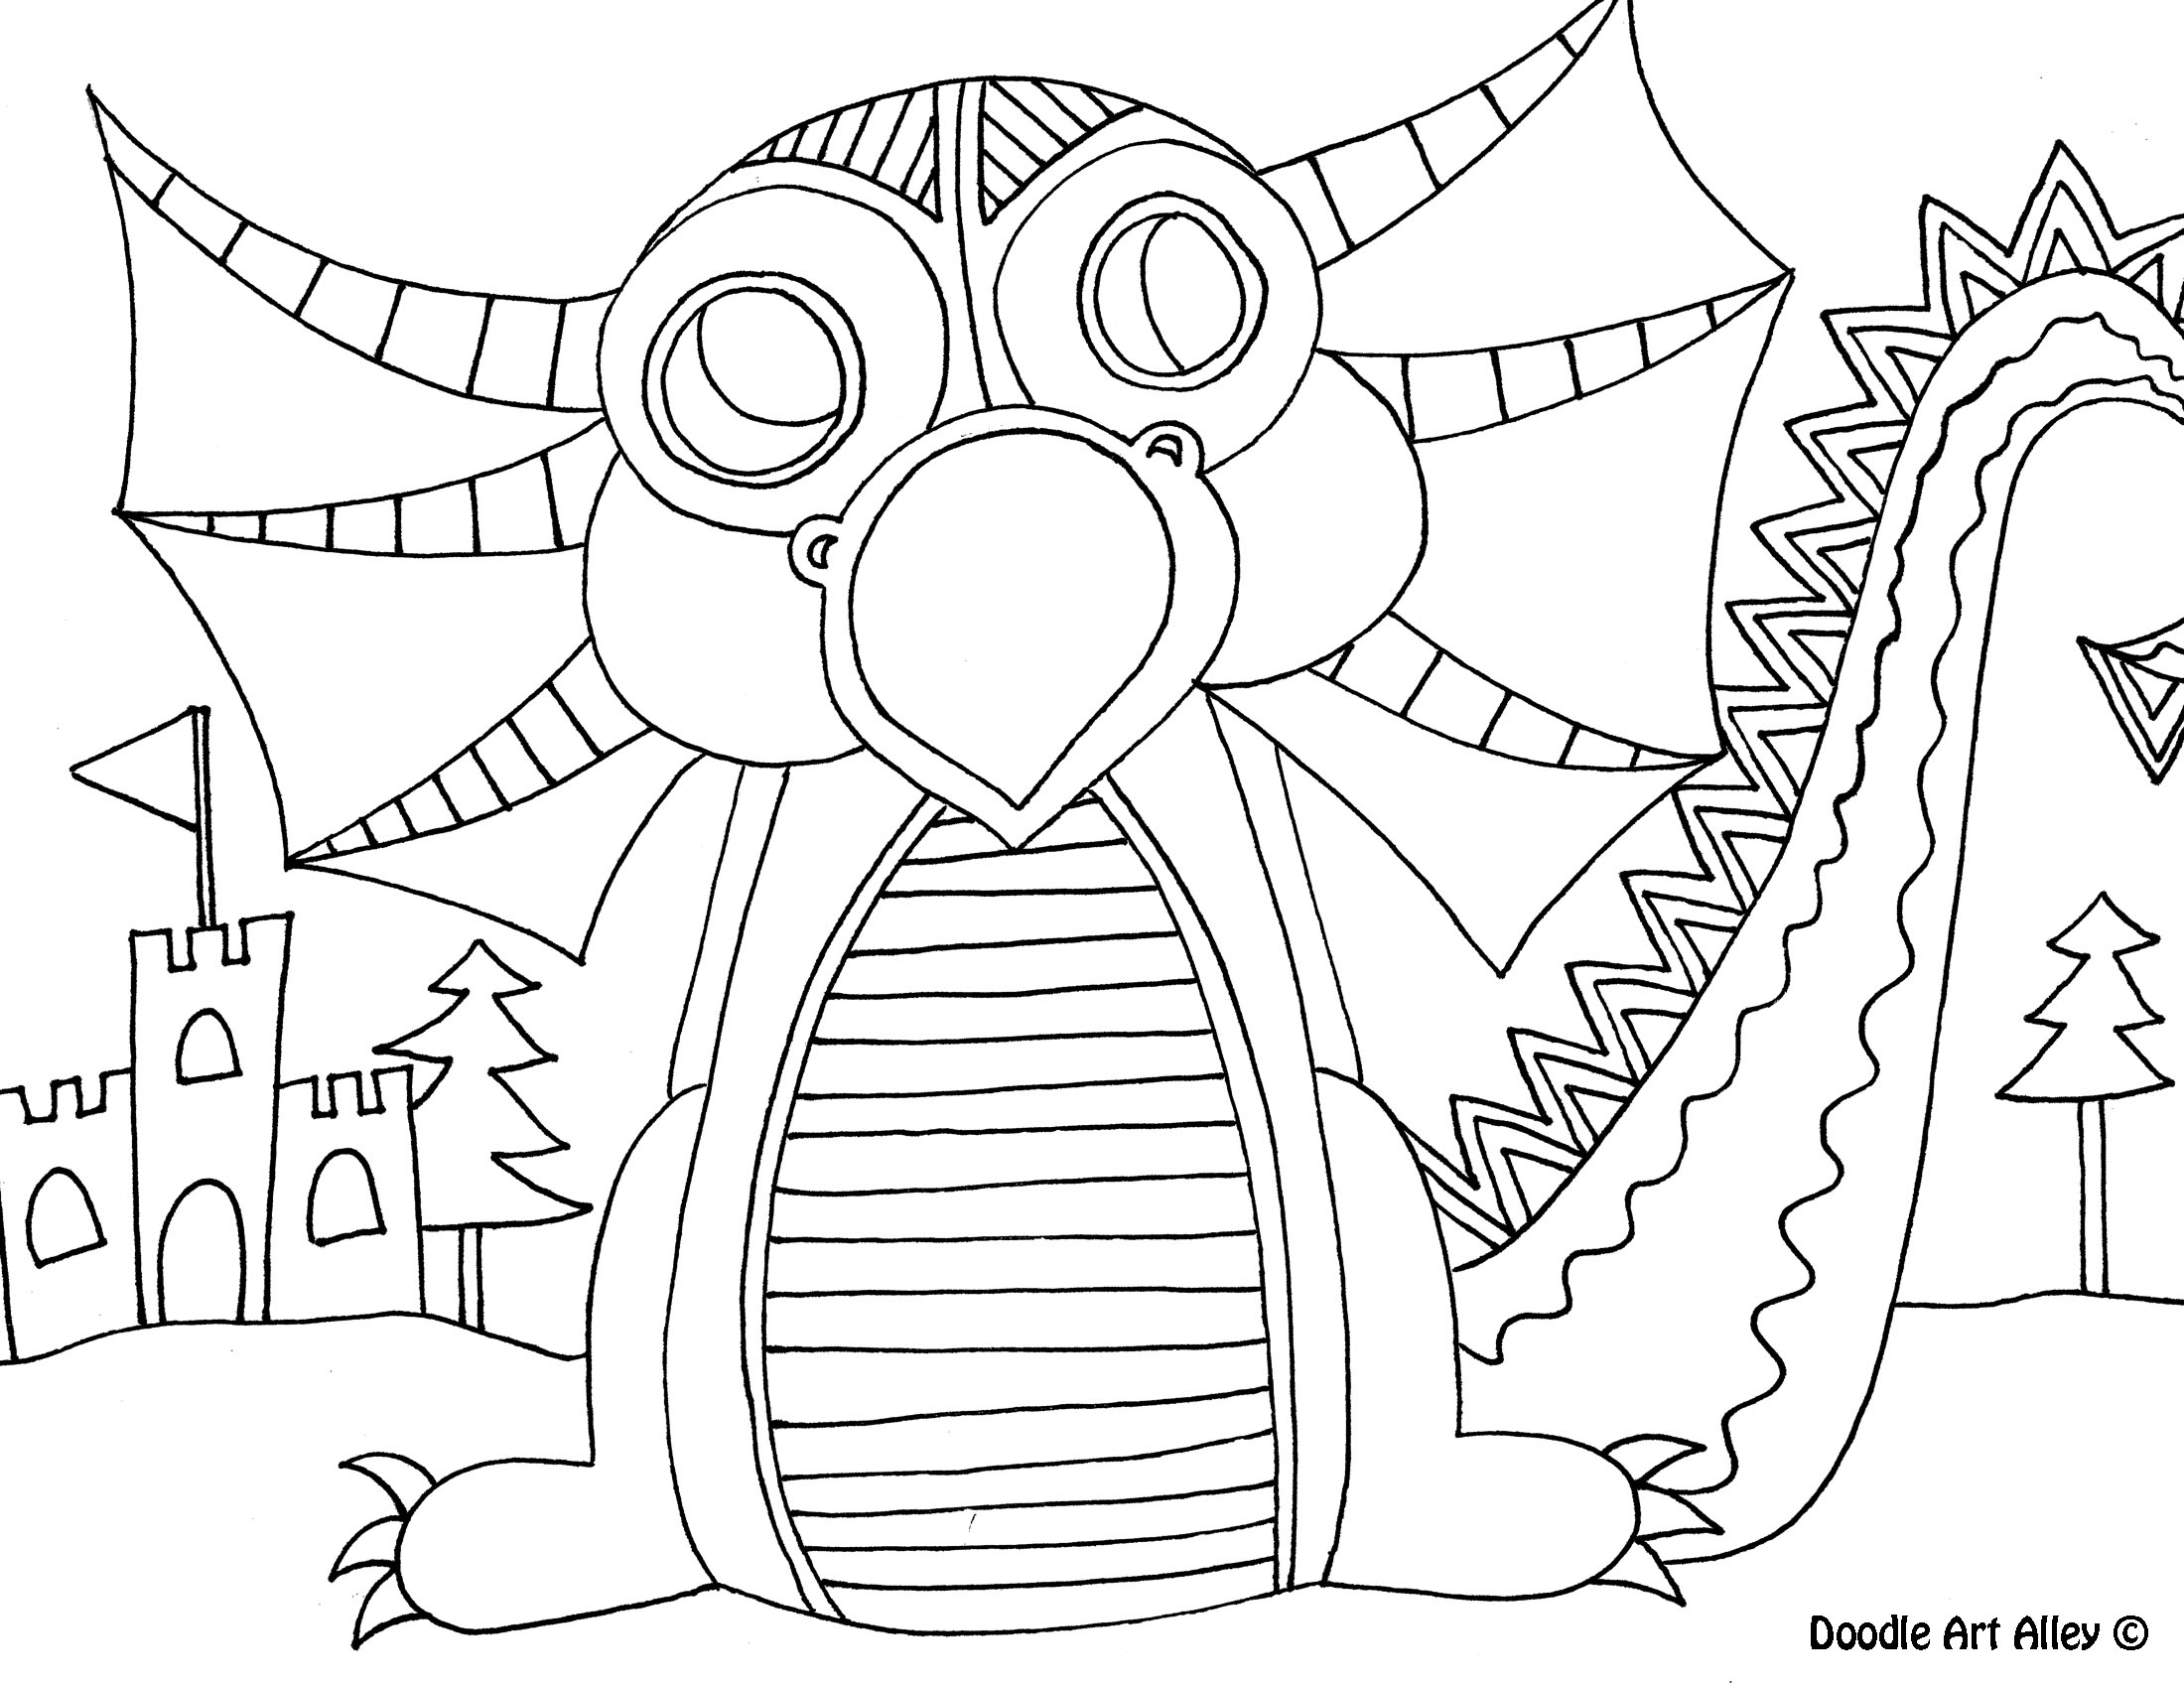 mythical creatures coloring pages - mythical creatures coloring pages